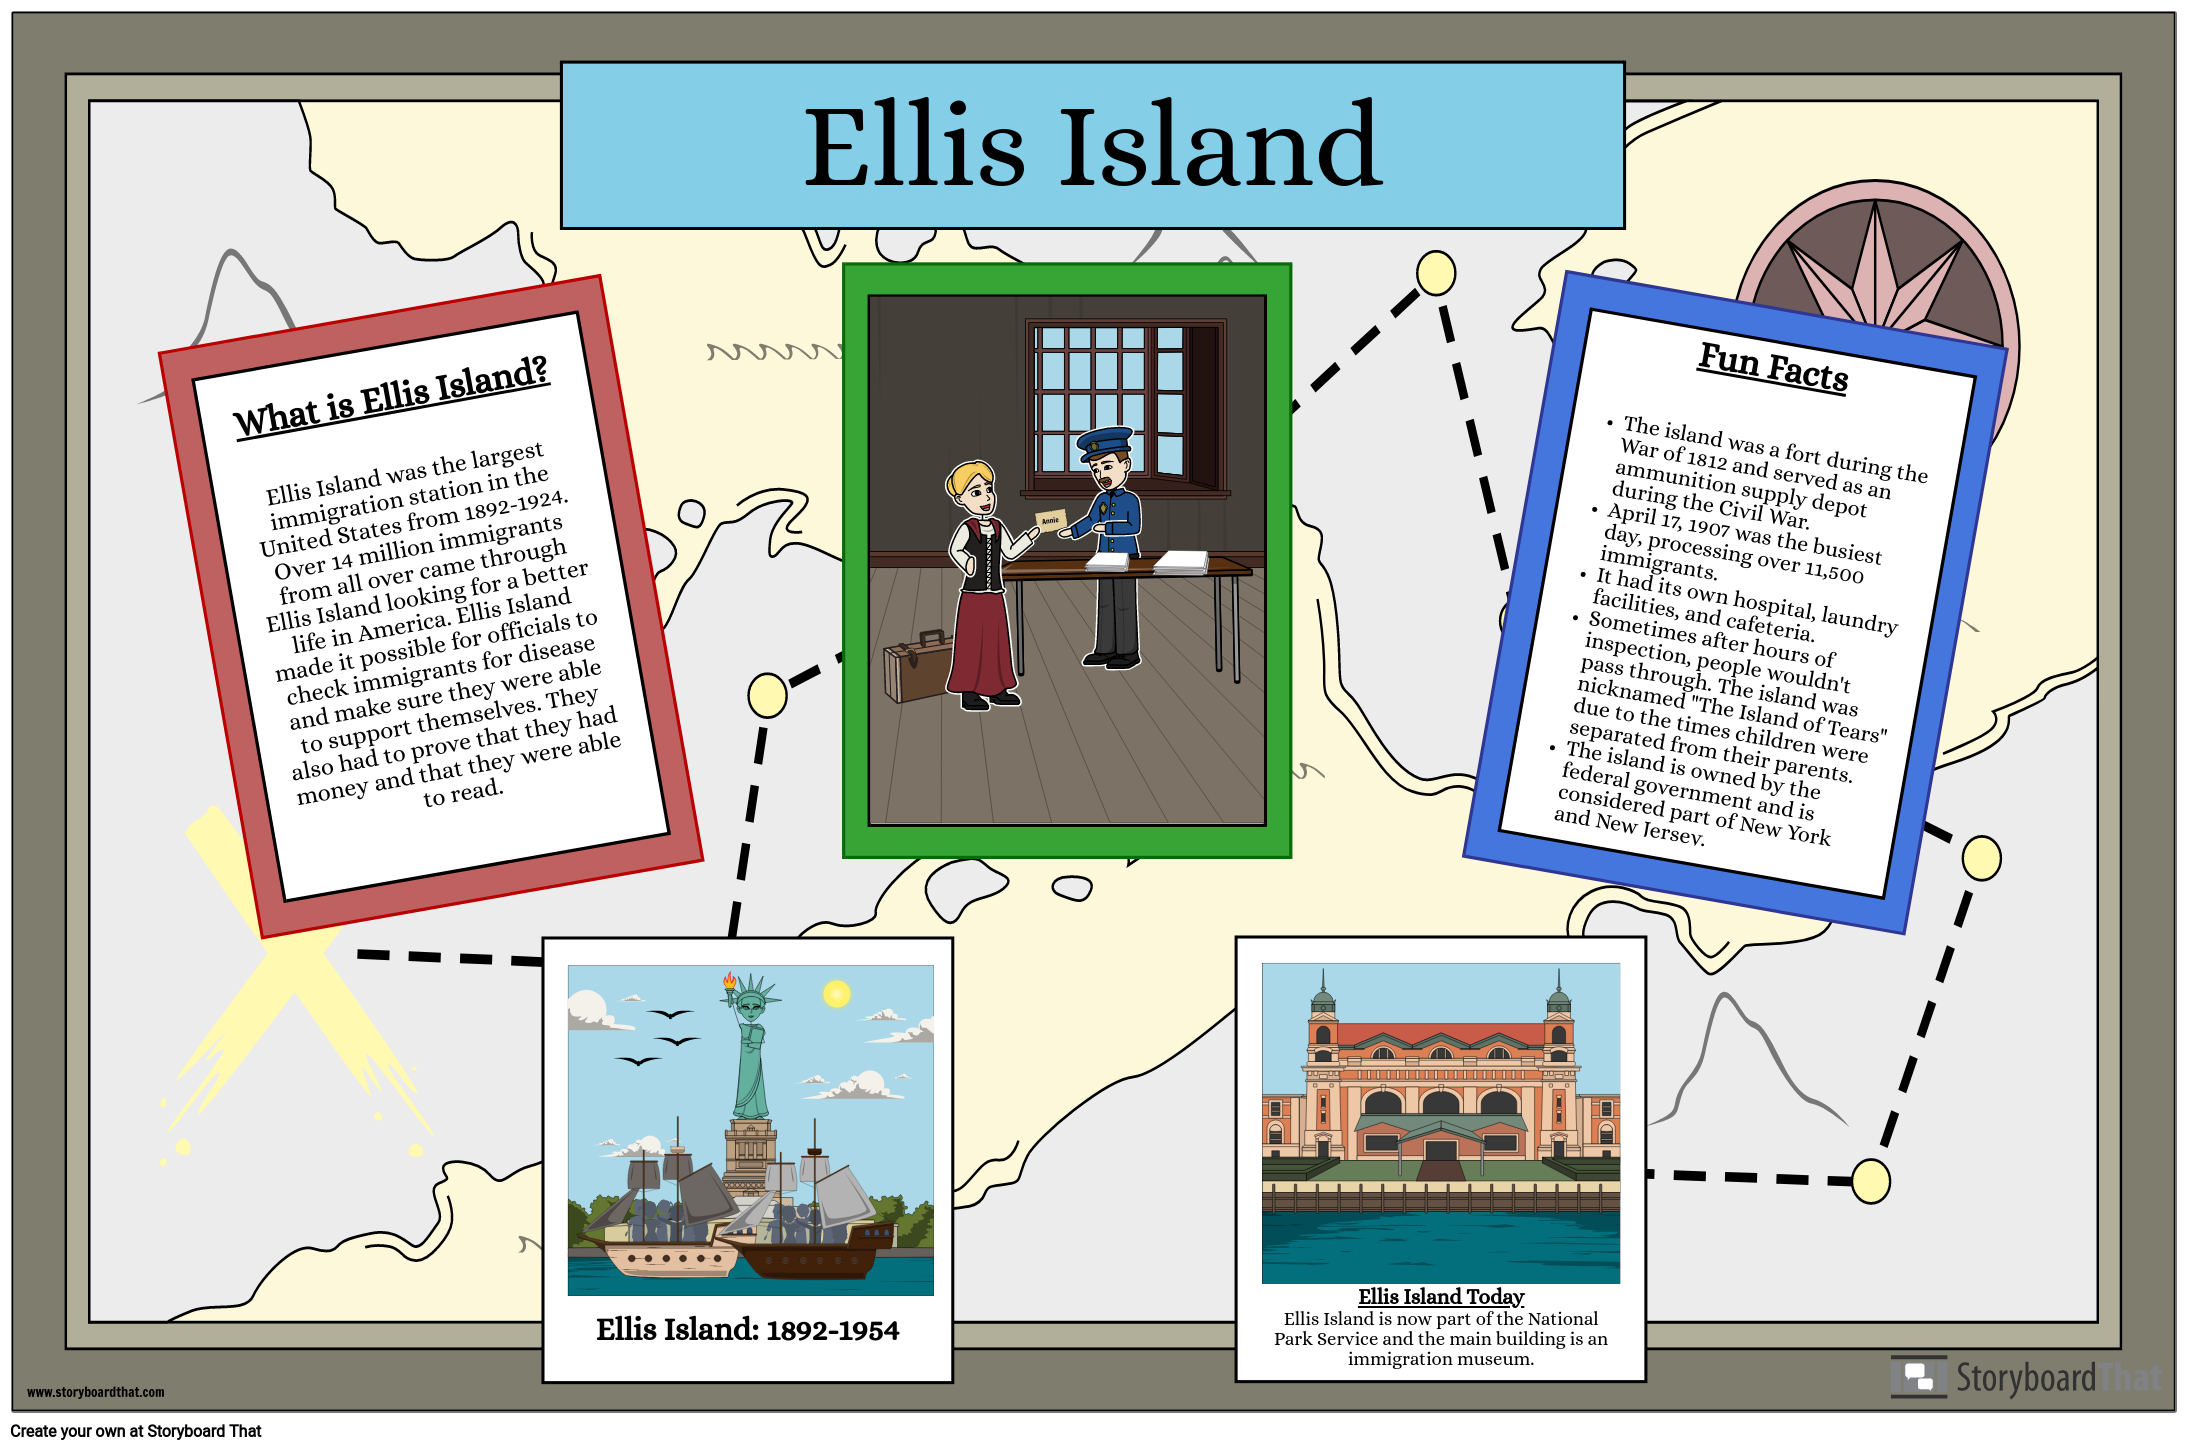 What is Ellis Island?